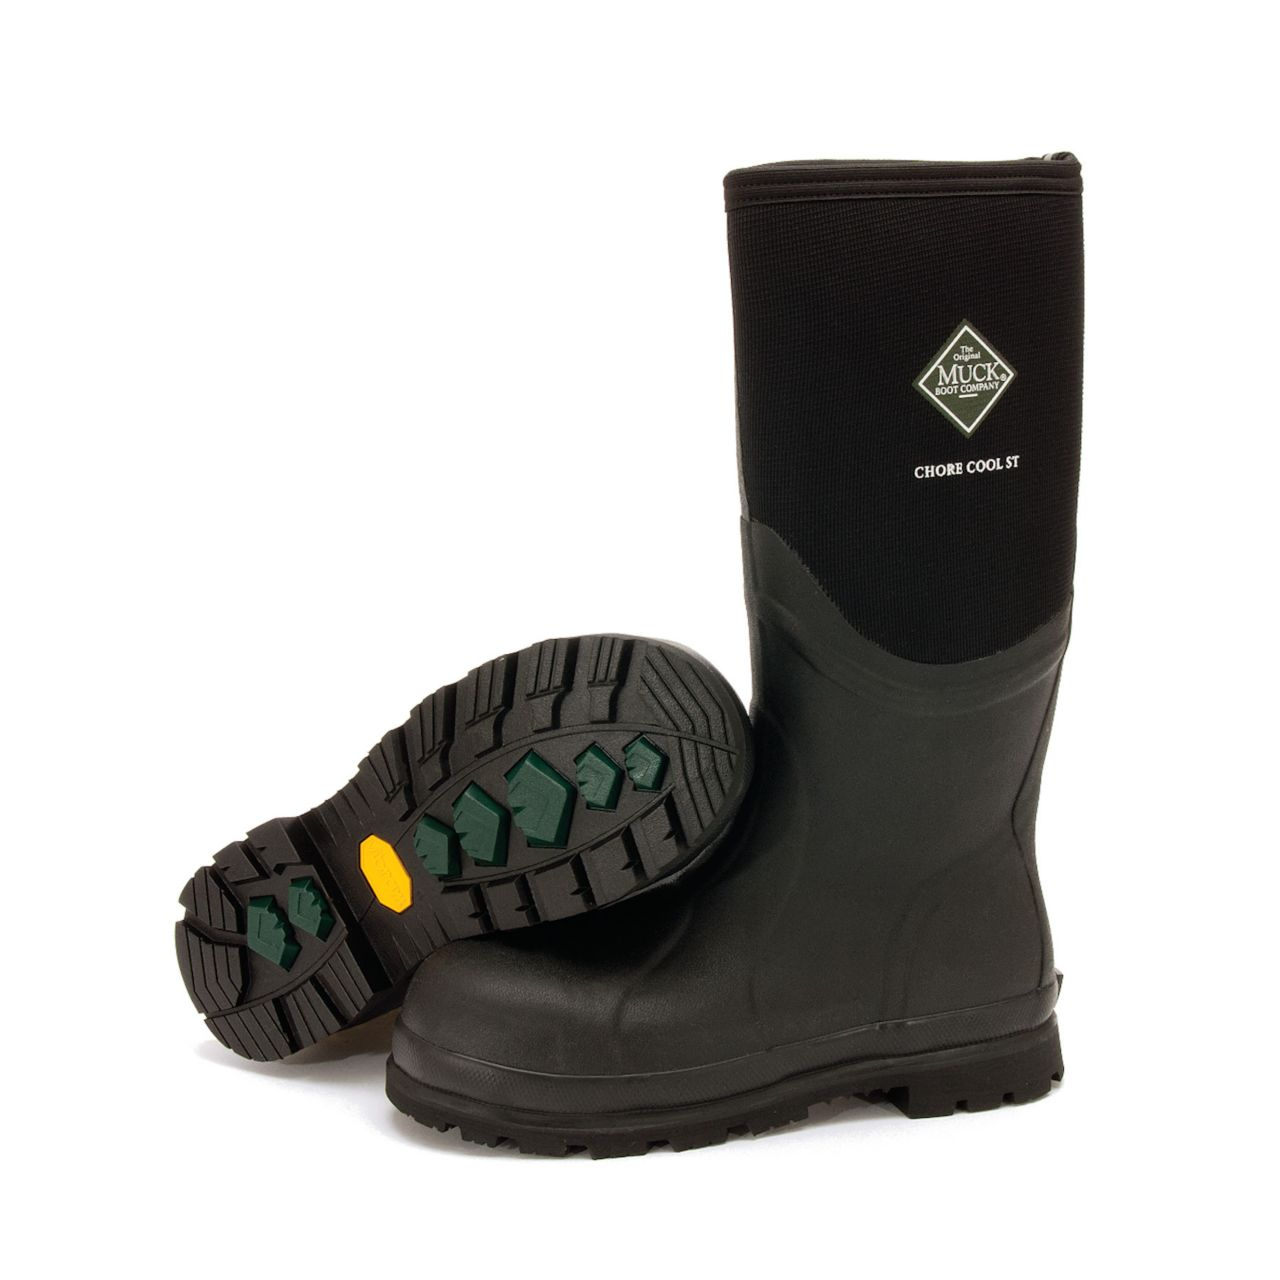 HS_muck_chore_cool_safety_toe_csct-000_chore cool st